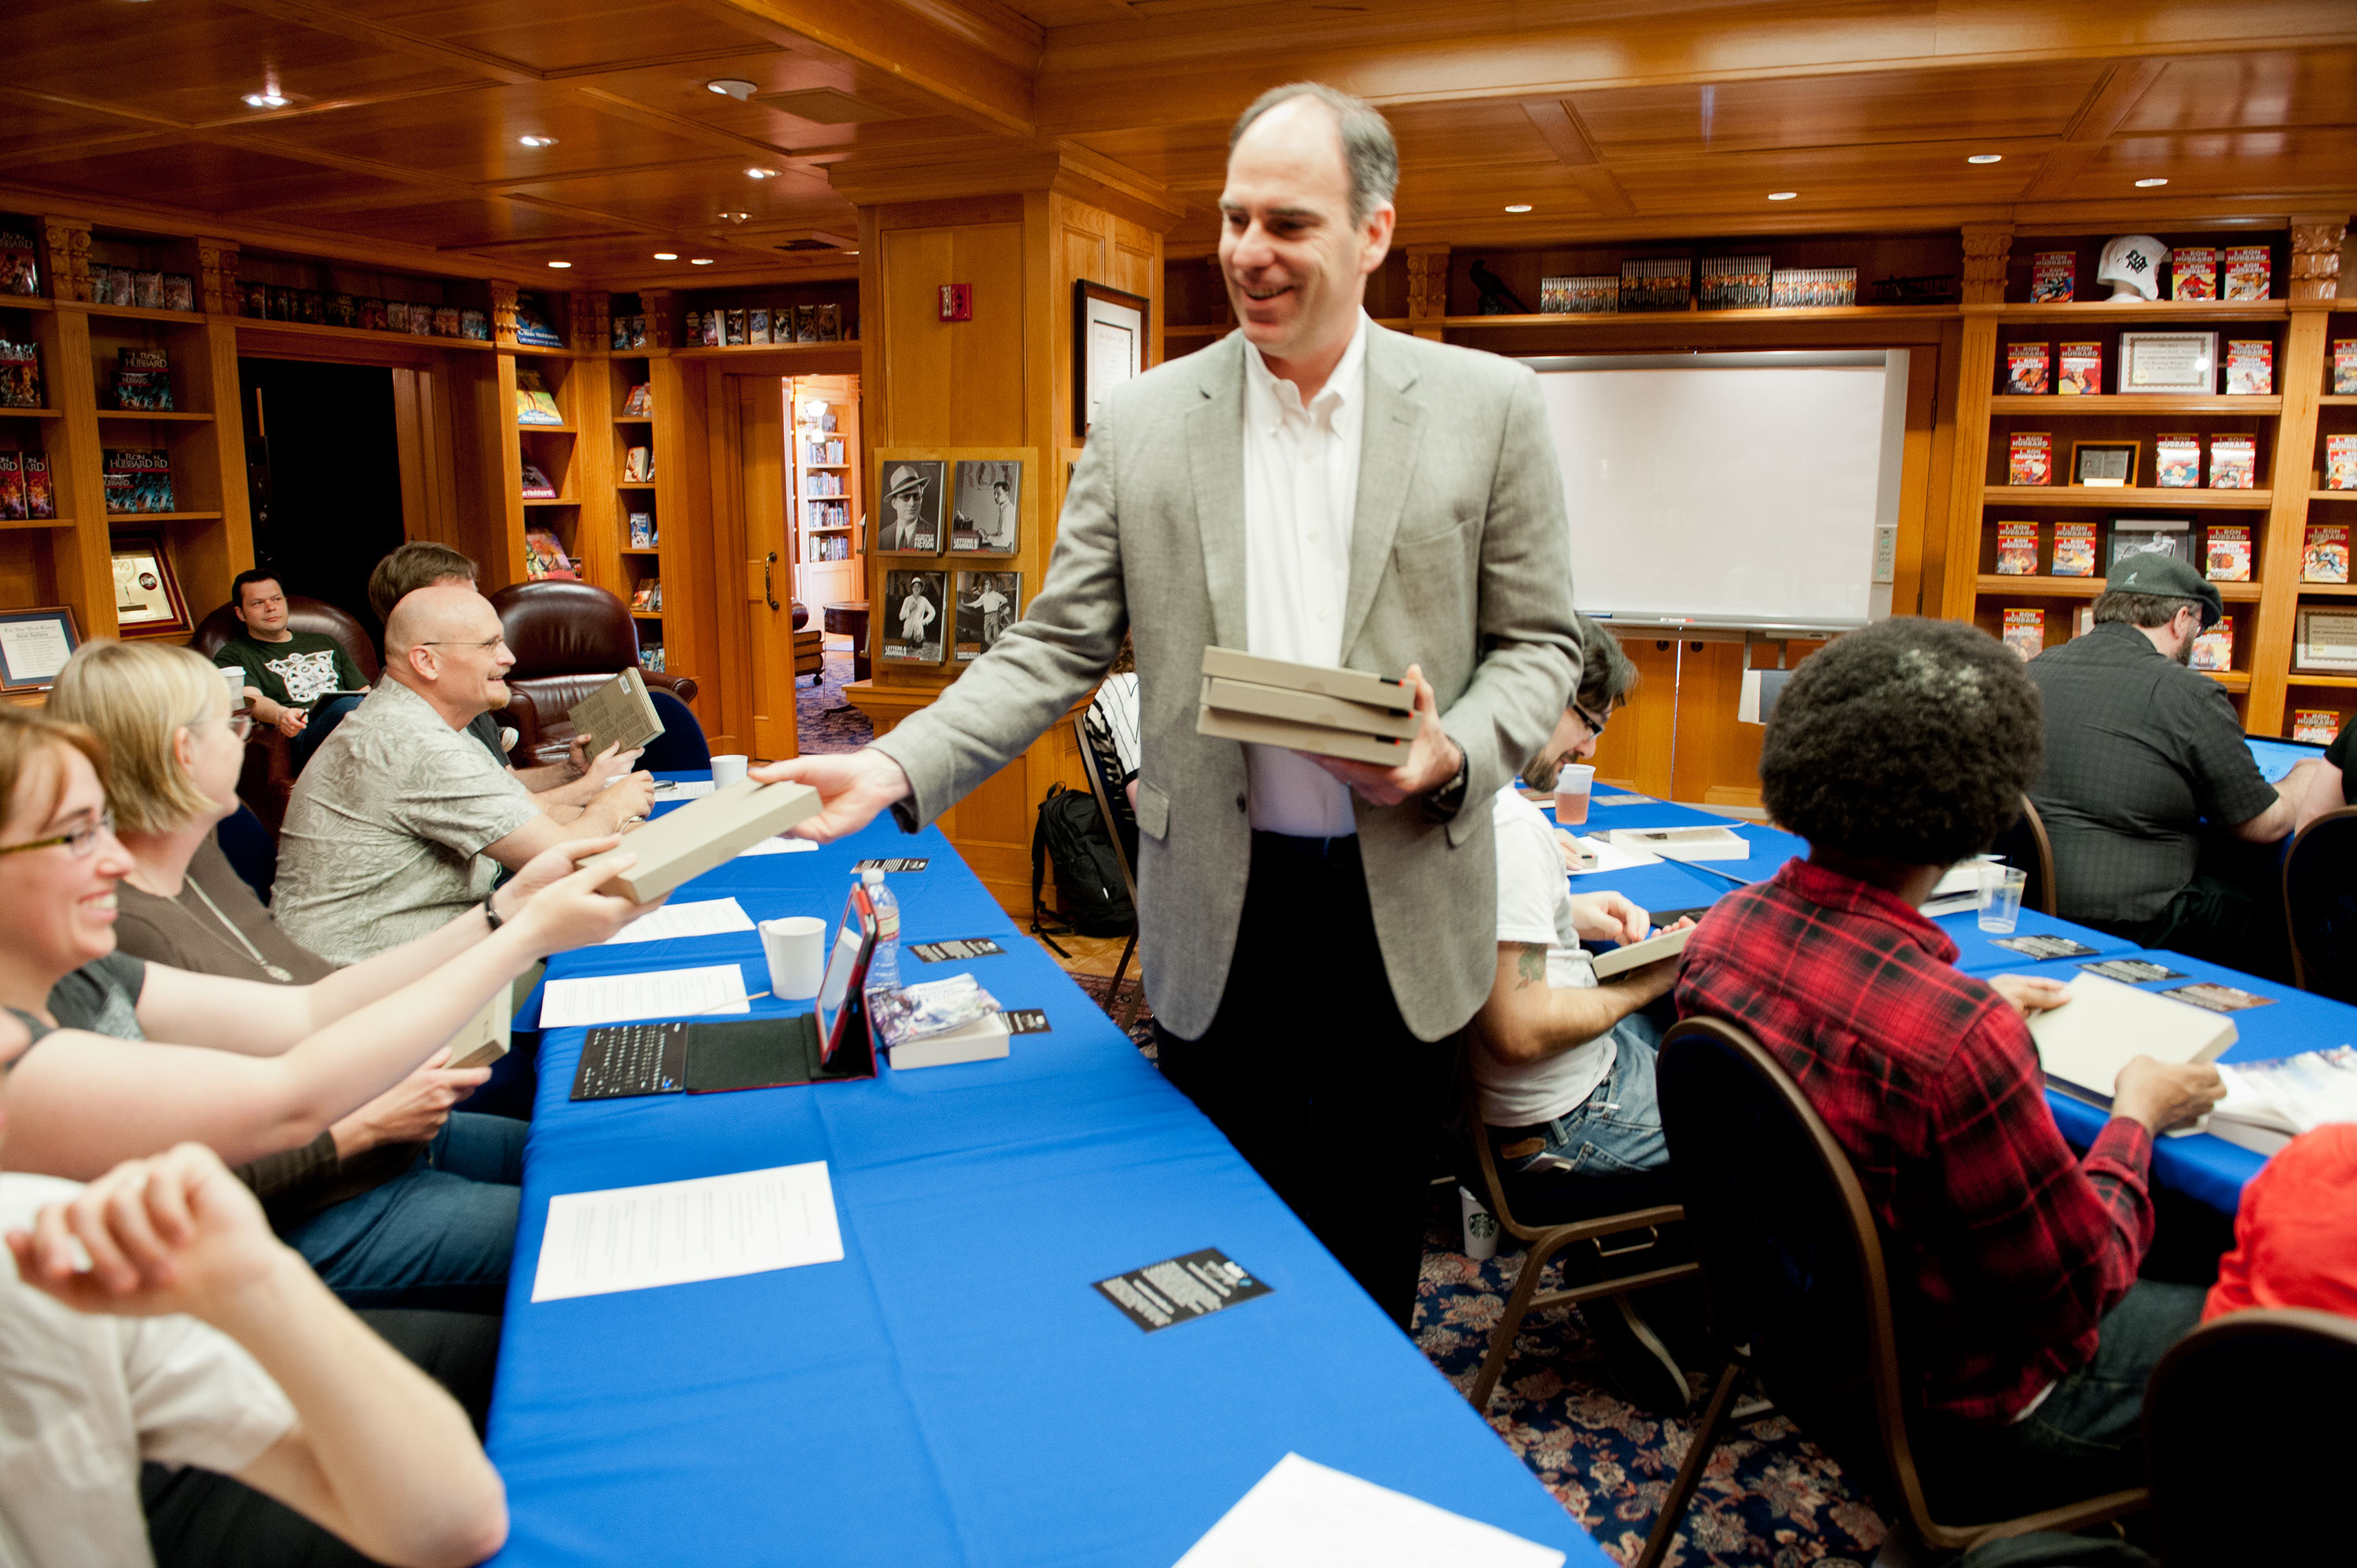 Director of Author Relations Kobo, Inc. Mark Lefebvre passing out new Kobo's to the winners